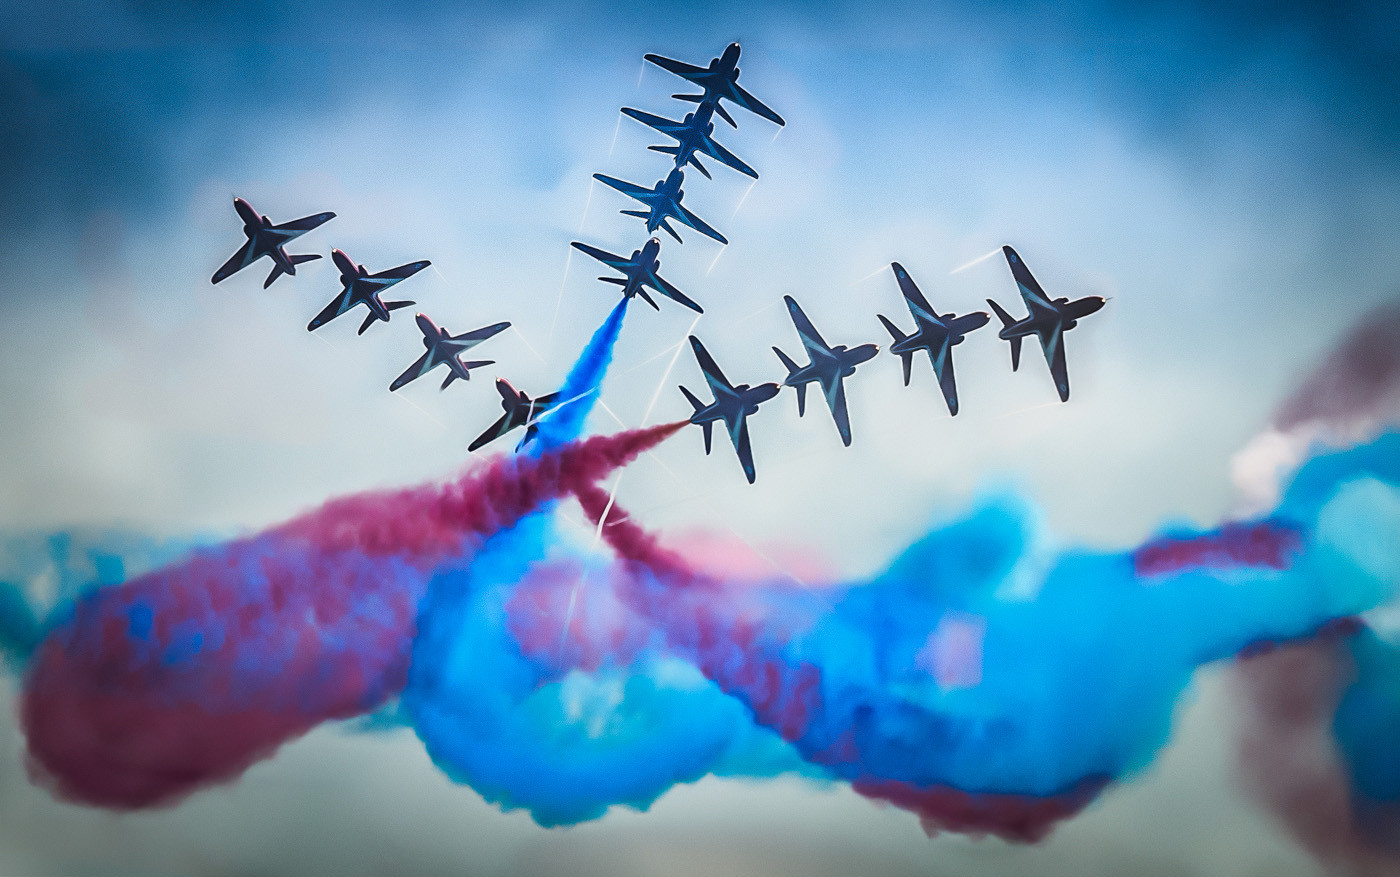 18 RED ARROWS BURST by Terry Day